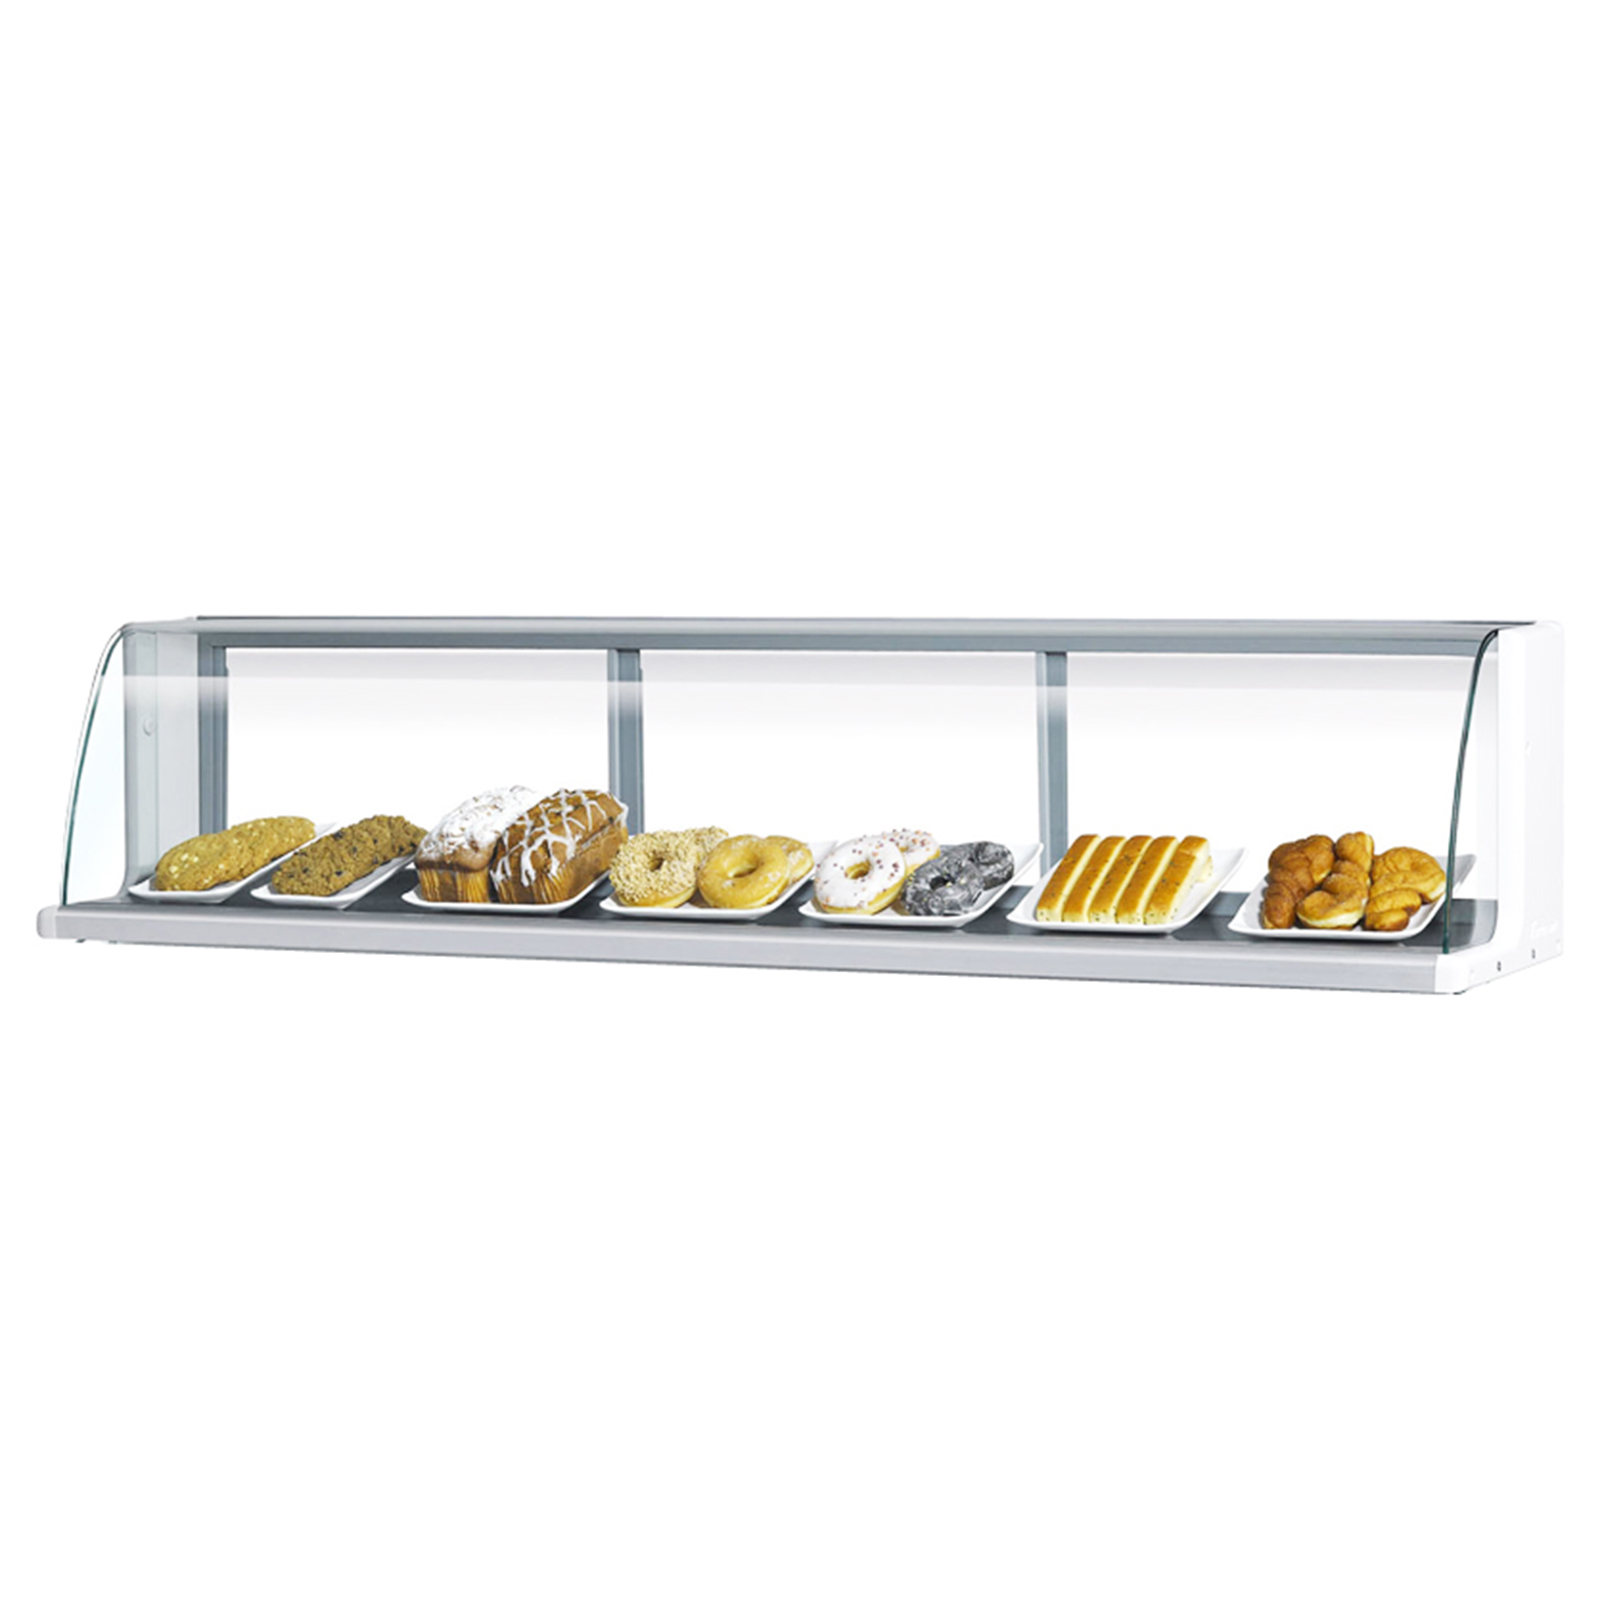 Turbo Air TOMD-75LW(B) display case, non-refrigerated countertop